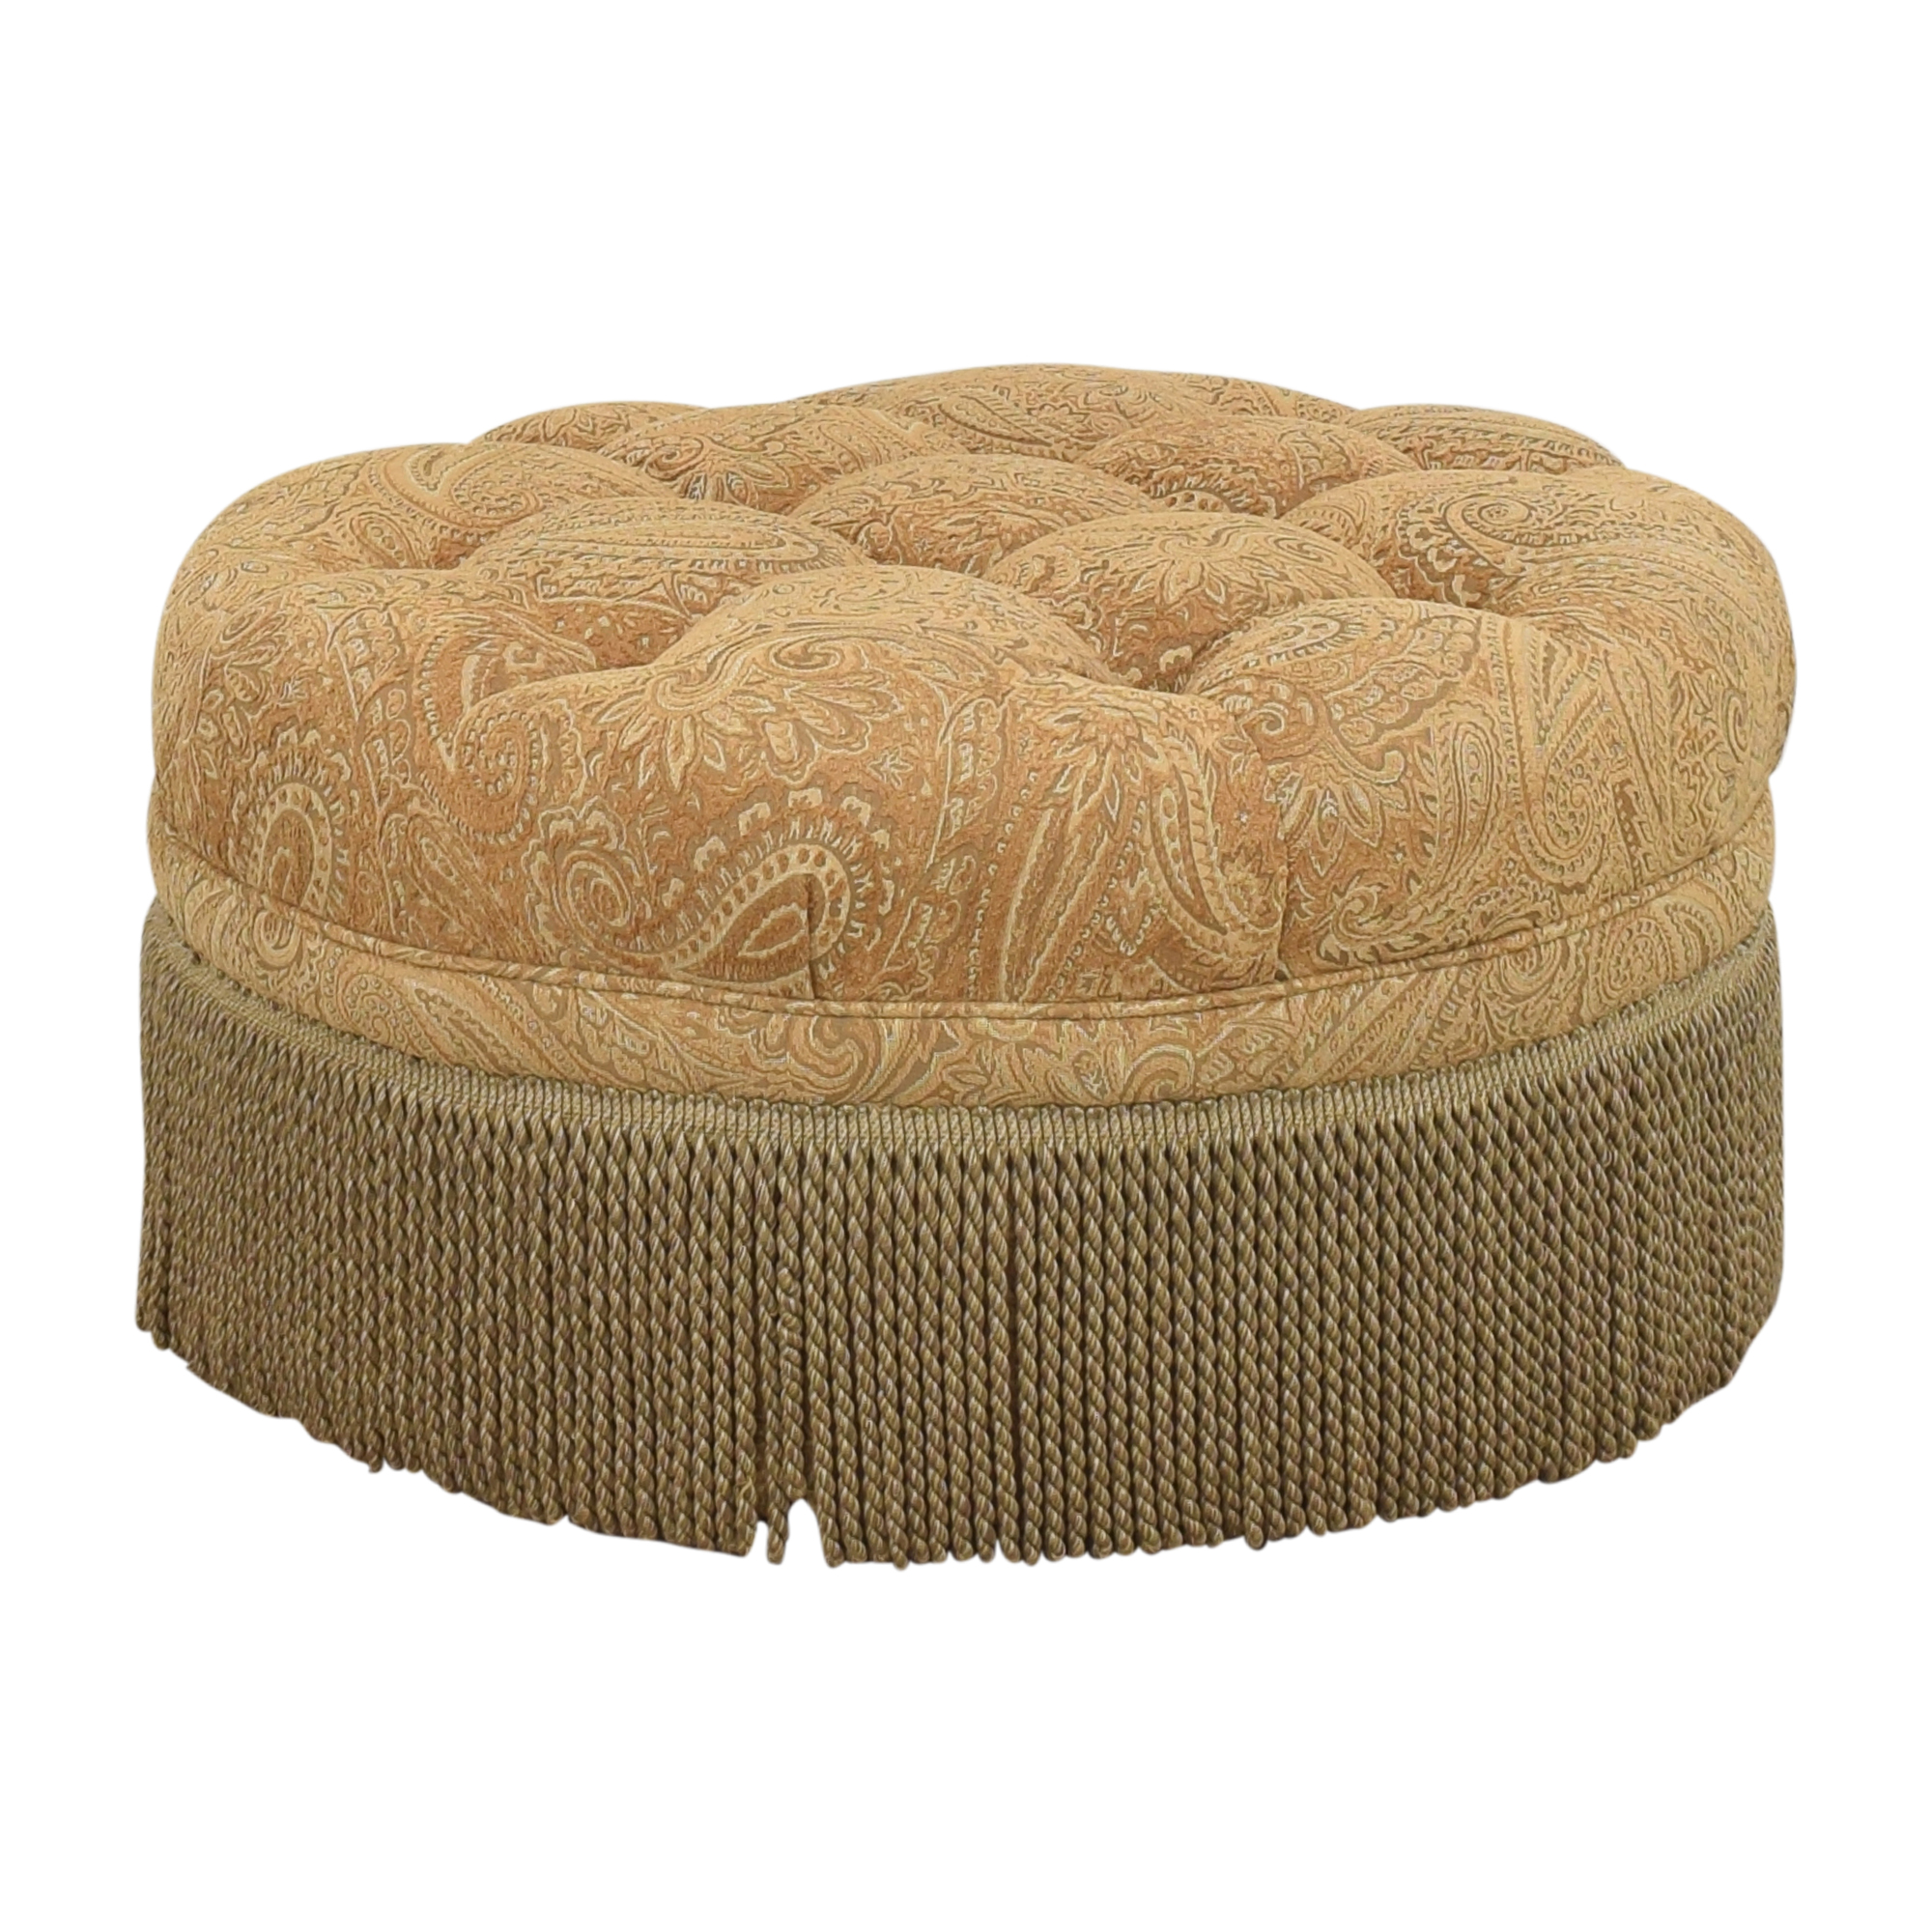 Round Tufted Fringe Ottoman for sale